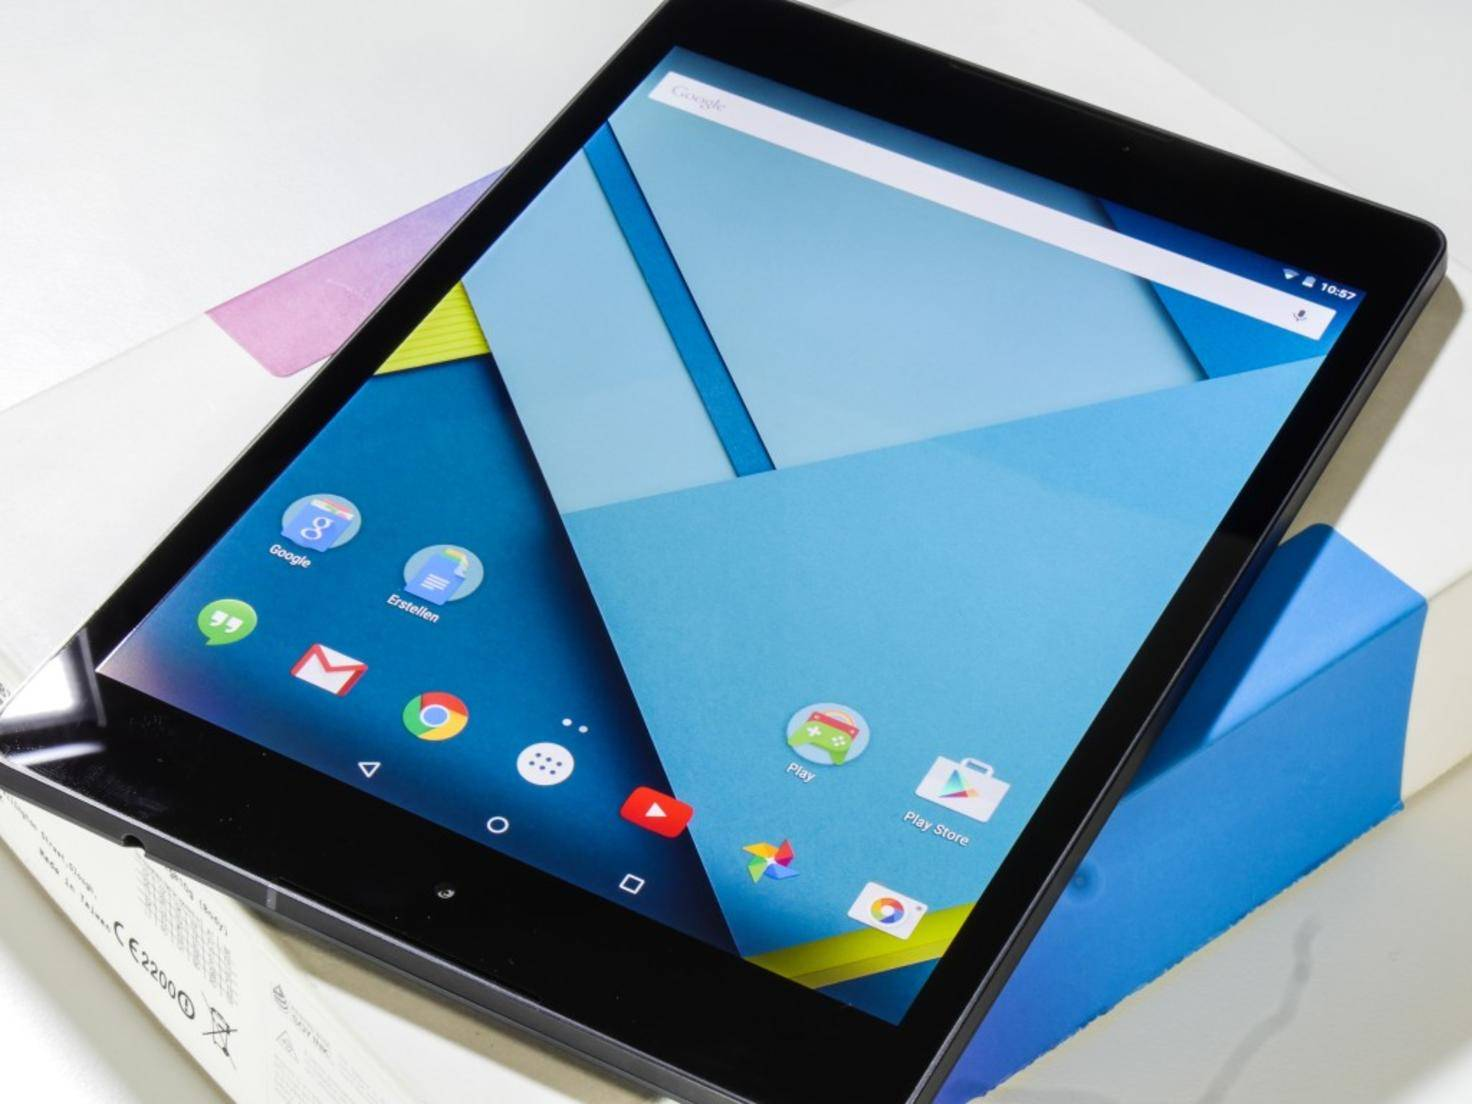 Google Nexus 9 Display